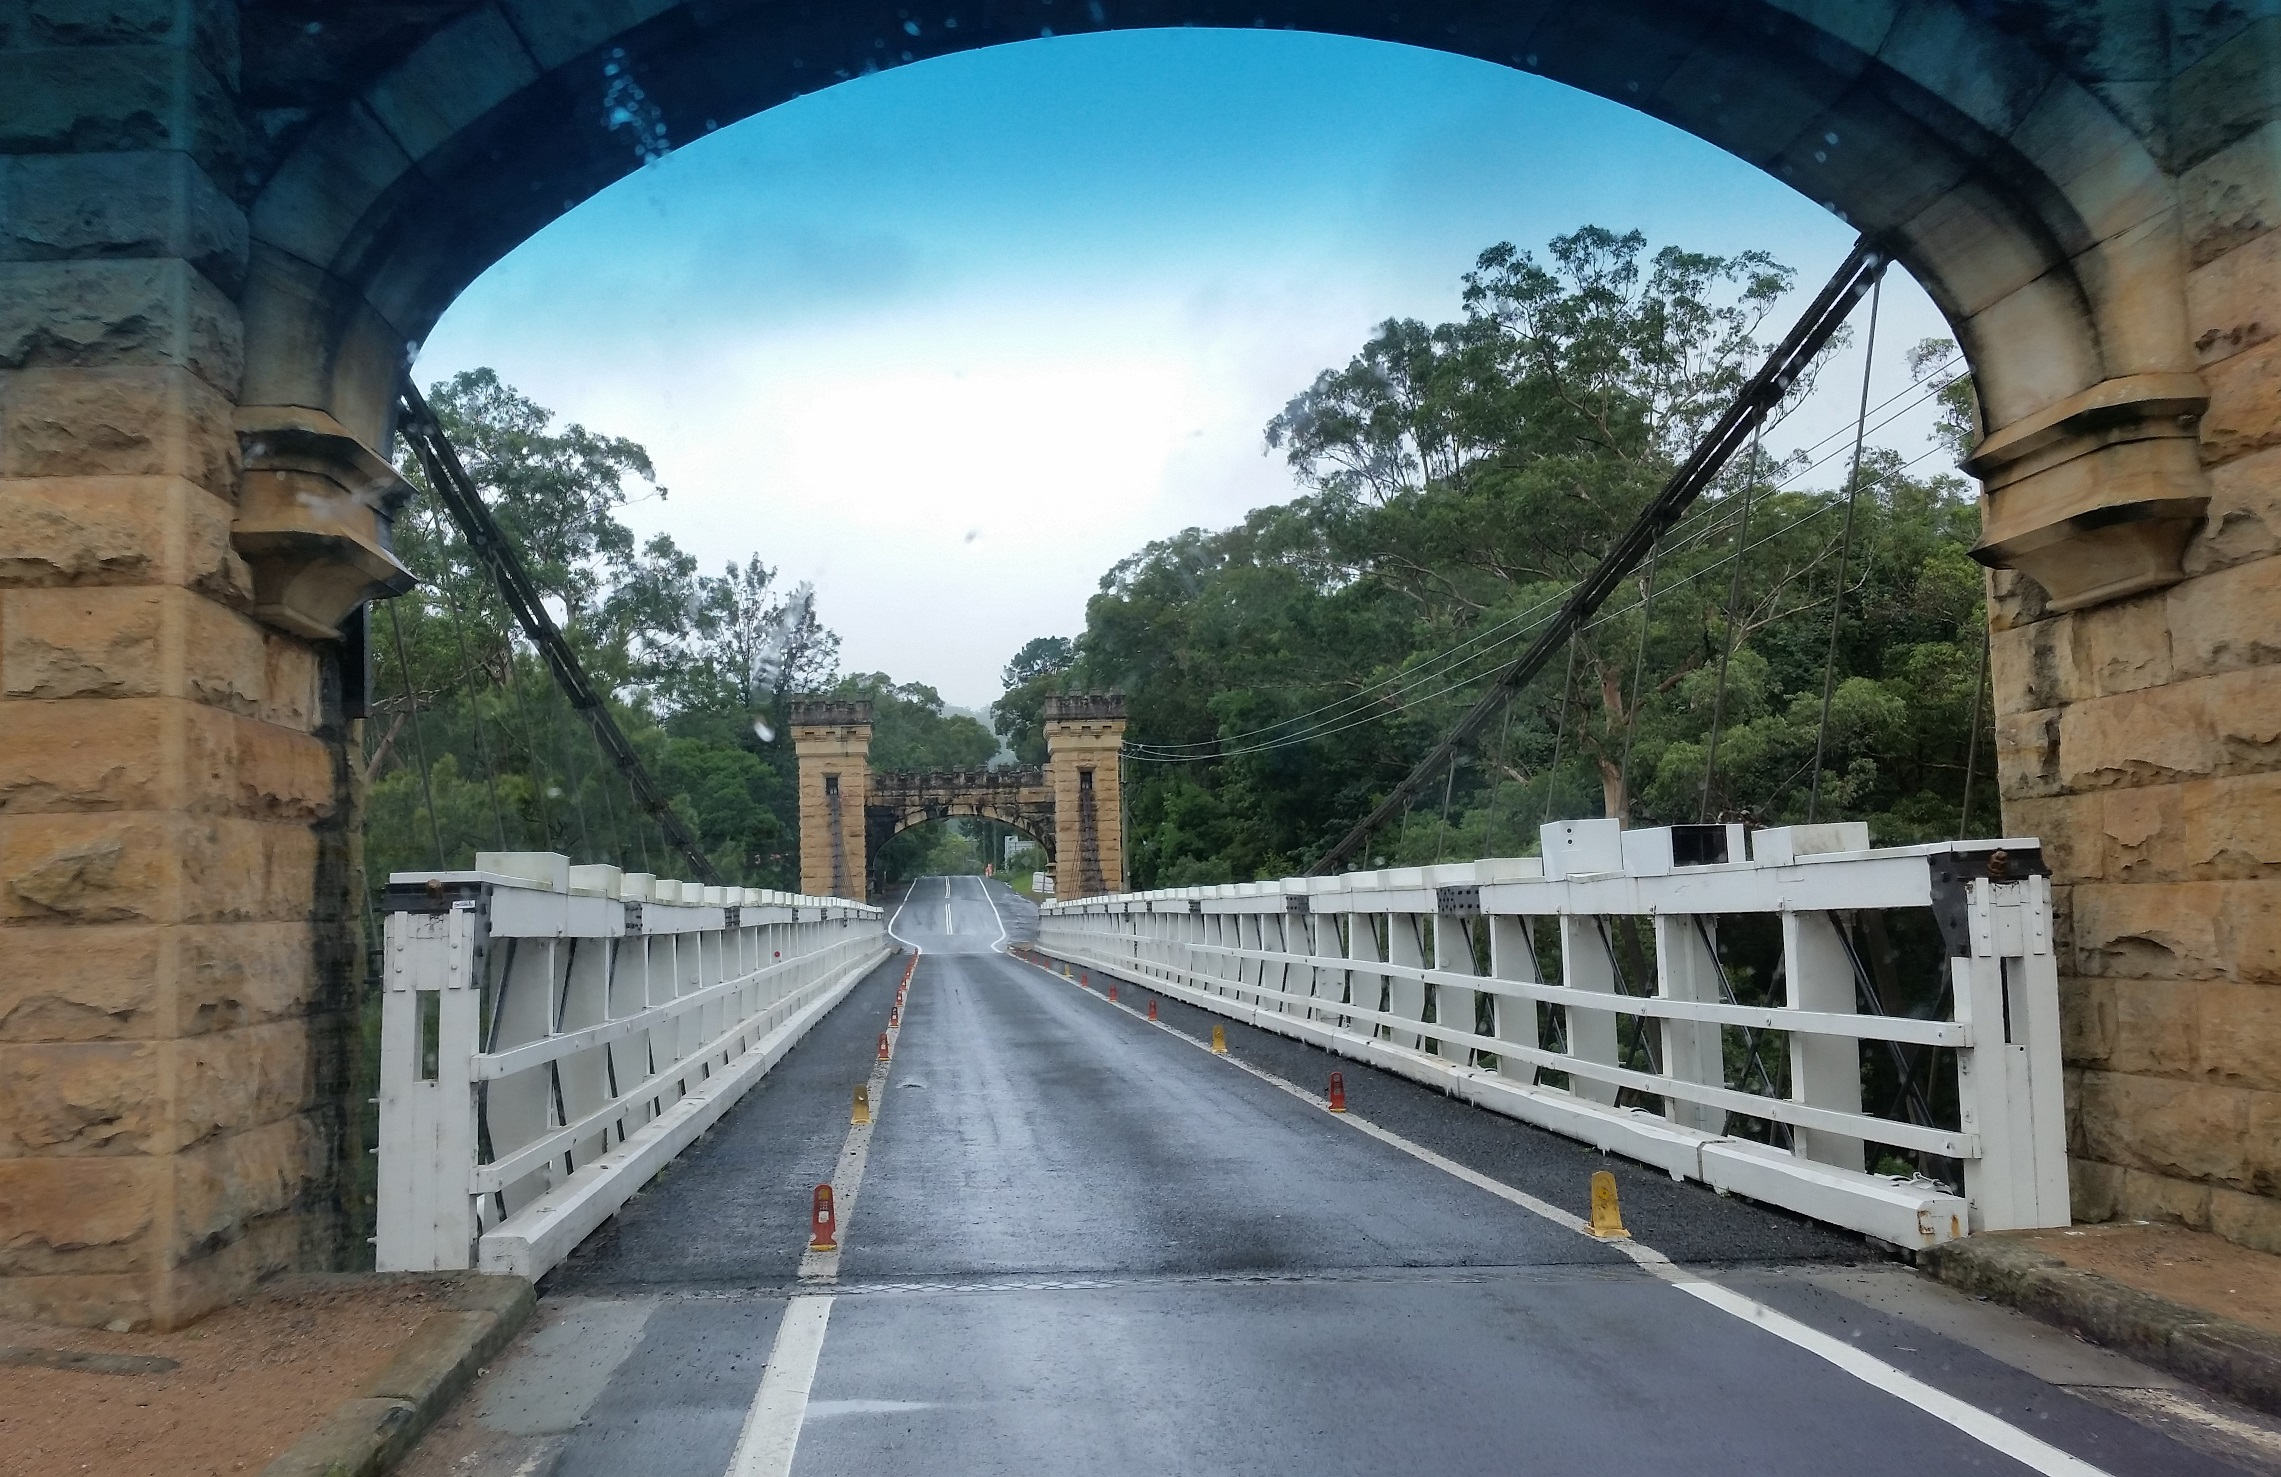 kangaroo bridge